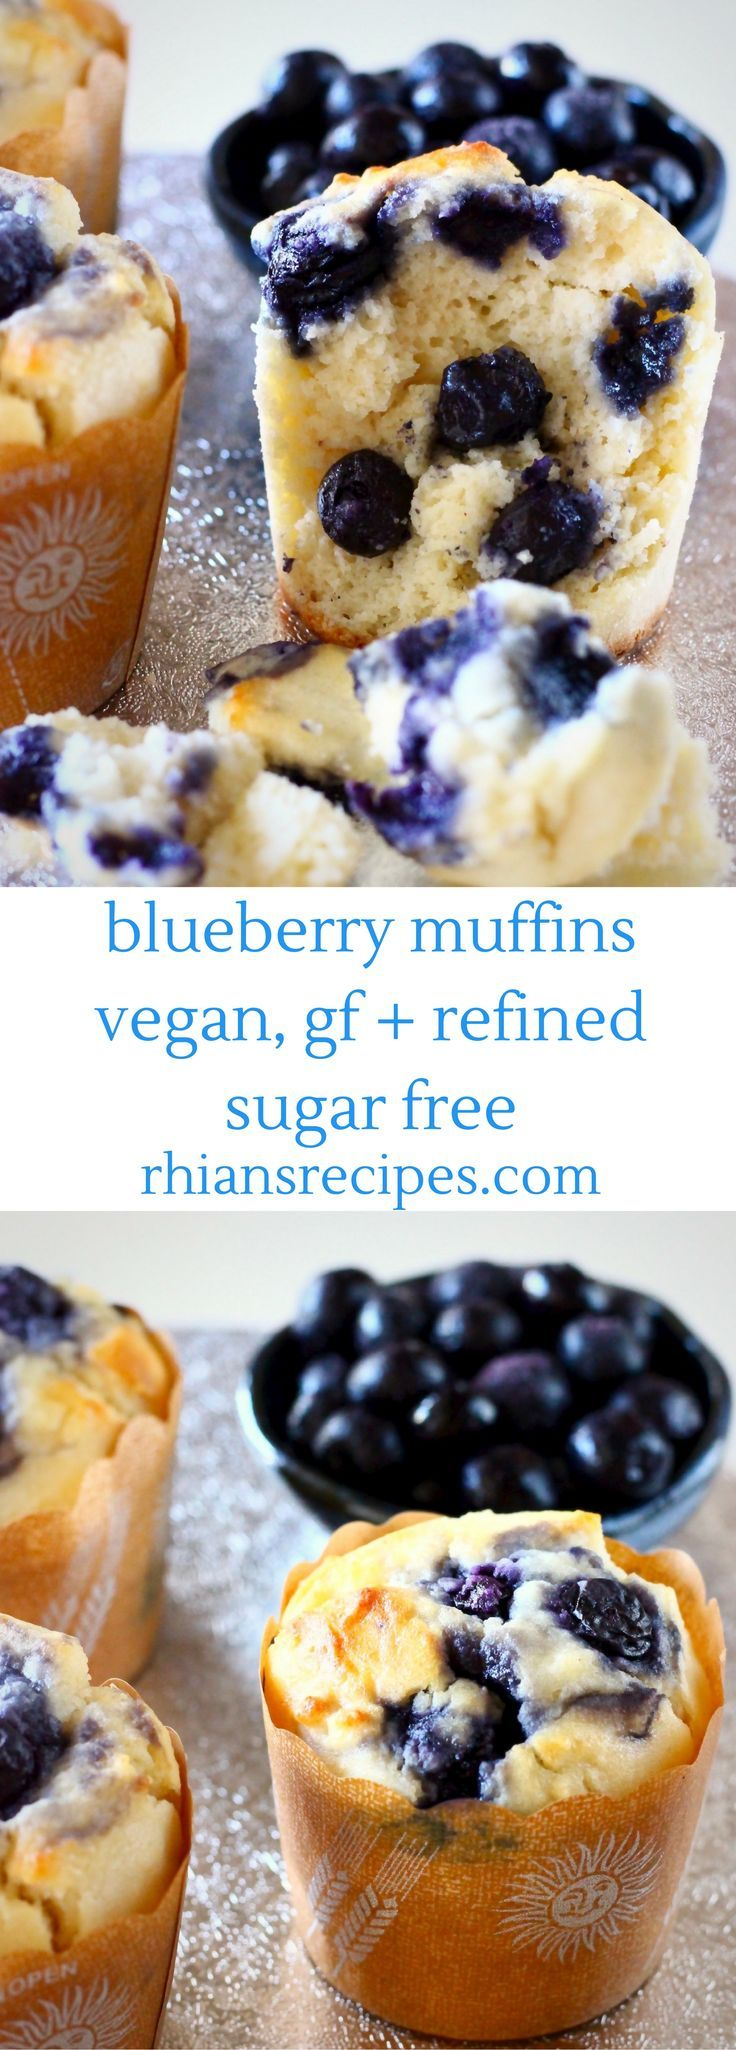 These Gluten-Free Vegan Blueberry Muffins are moist and fluffy, packed full of sweet, juicy blueberries and definitely healthy enough for breakfast! Refined sugar free.